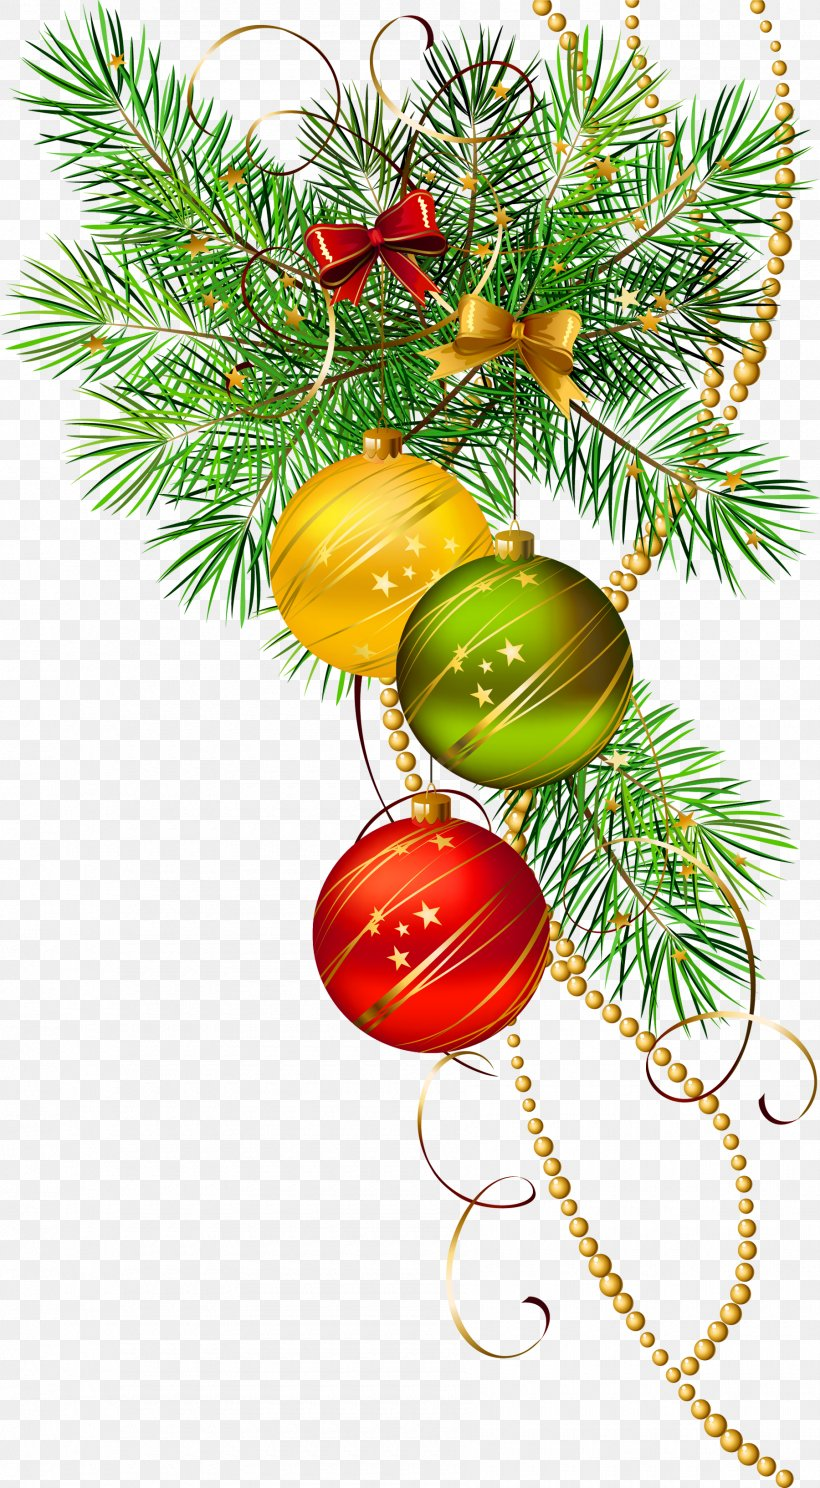 Christmas Ornament Icon Clip Art, PNG, 1800x3268px, Christmas, Ball, Branch, Christmas Decoration, Christmas Ornament Download Free